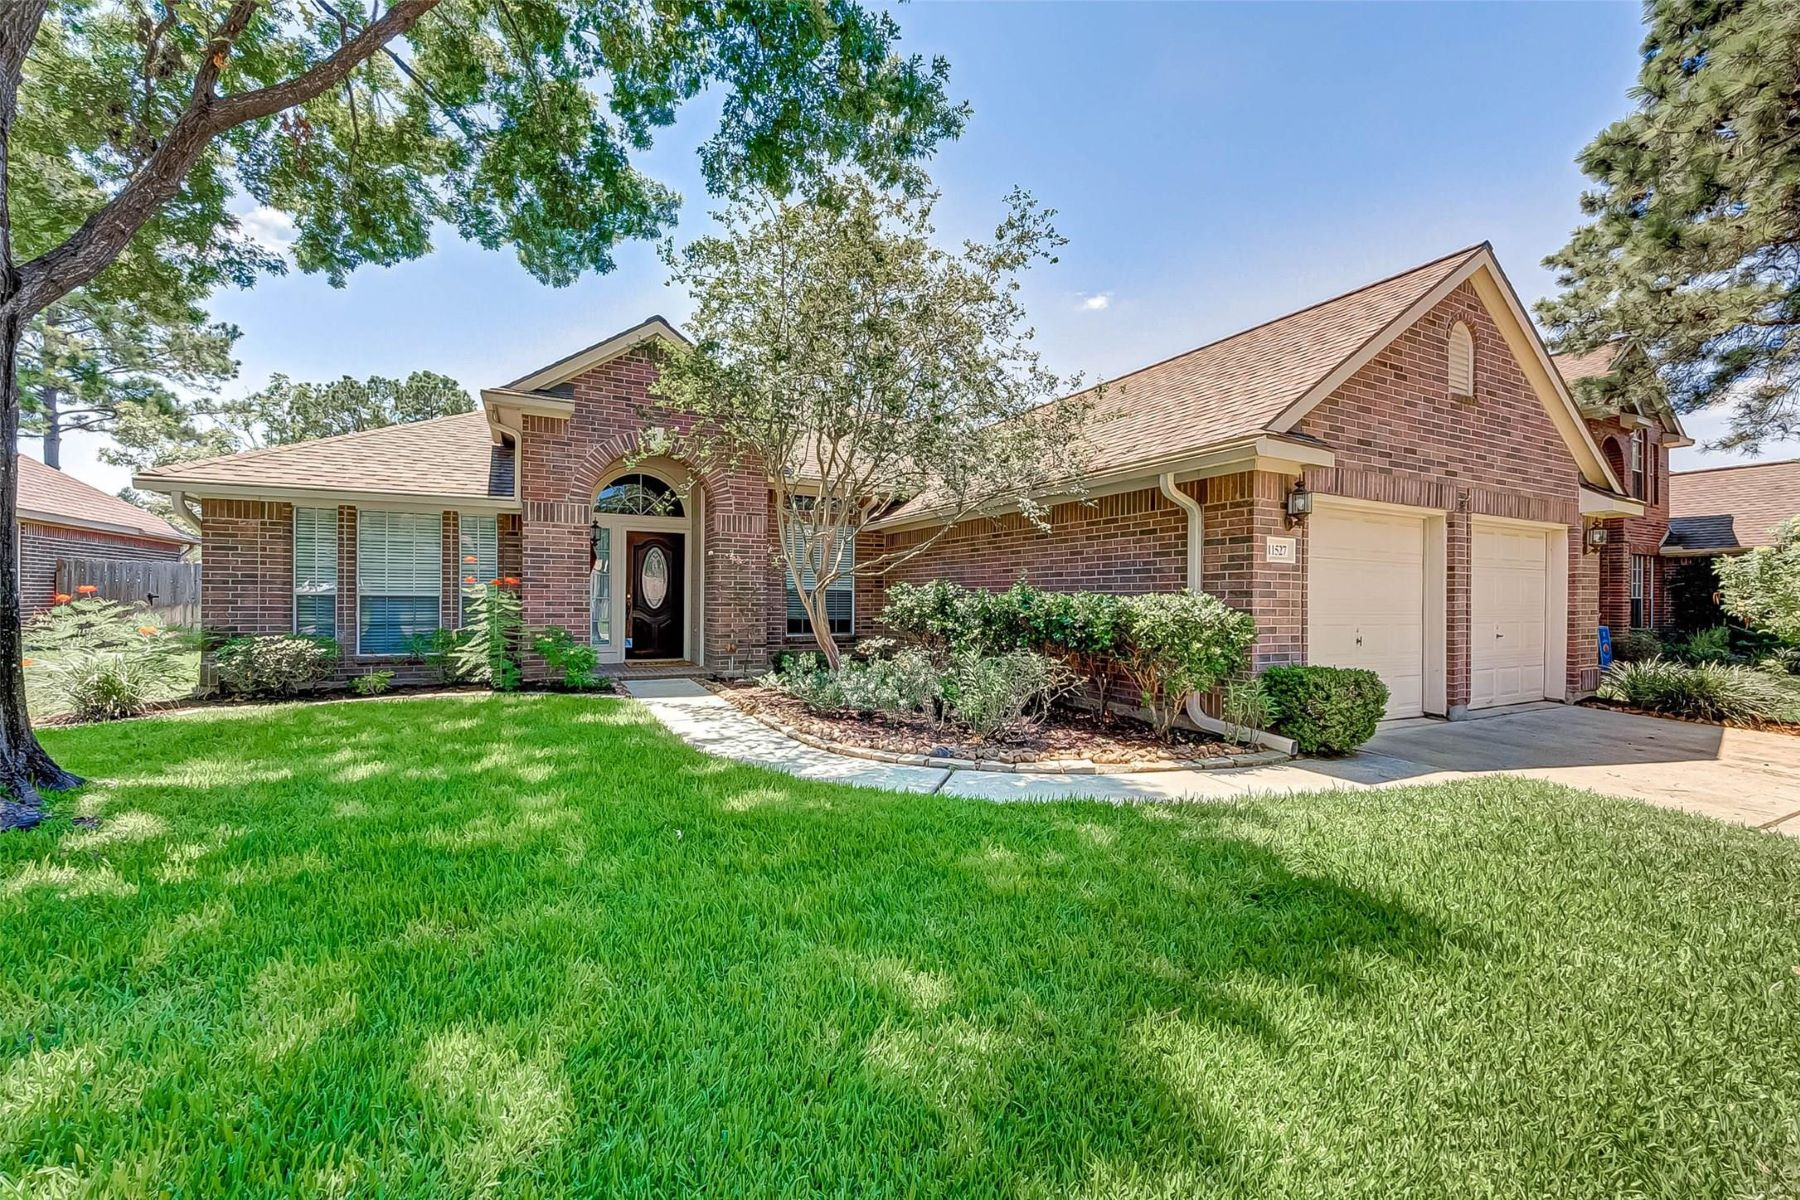 Single Family Homes for Sale at 11527 Canyon Woods Drive Tomball, Texas 77377 United States